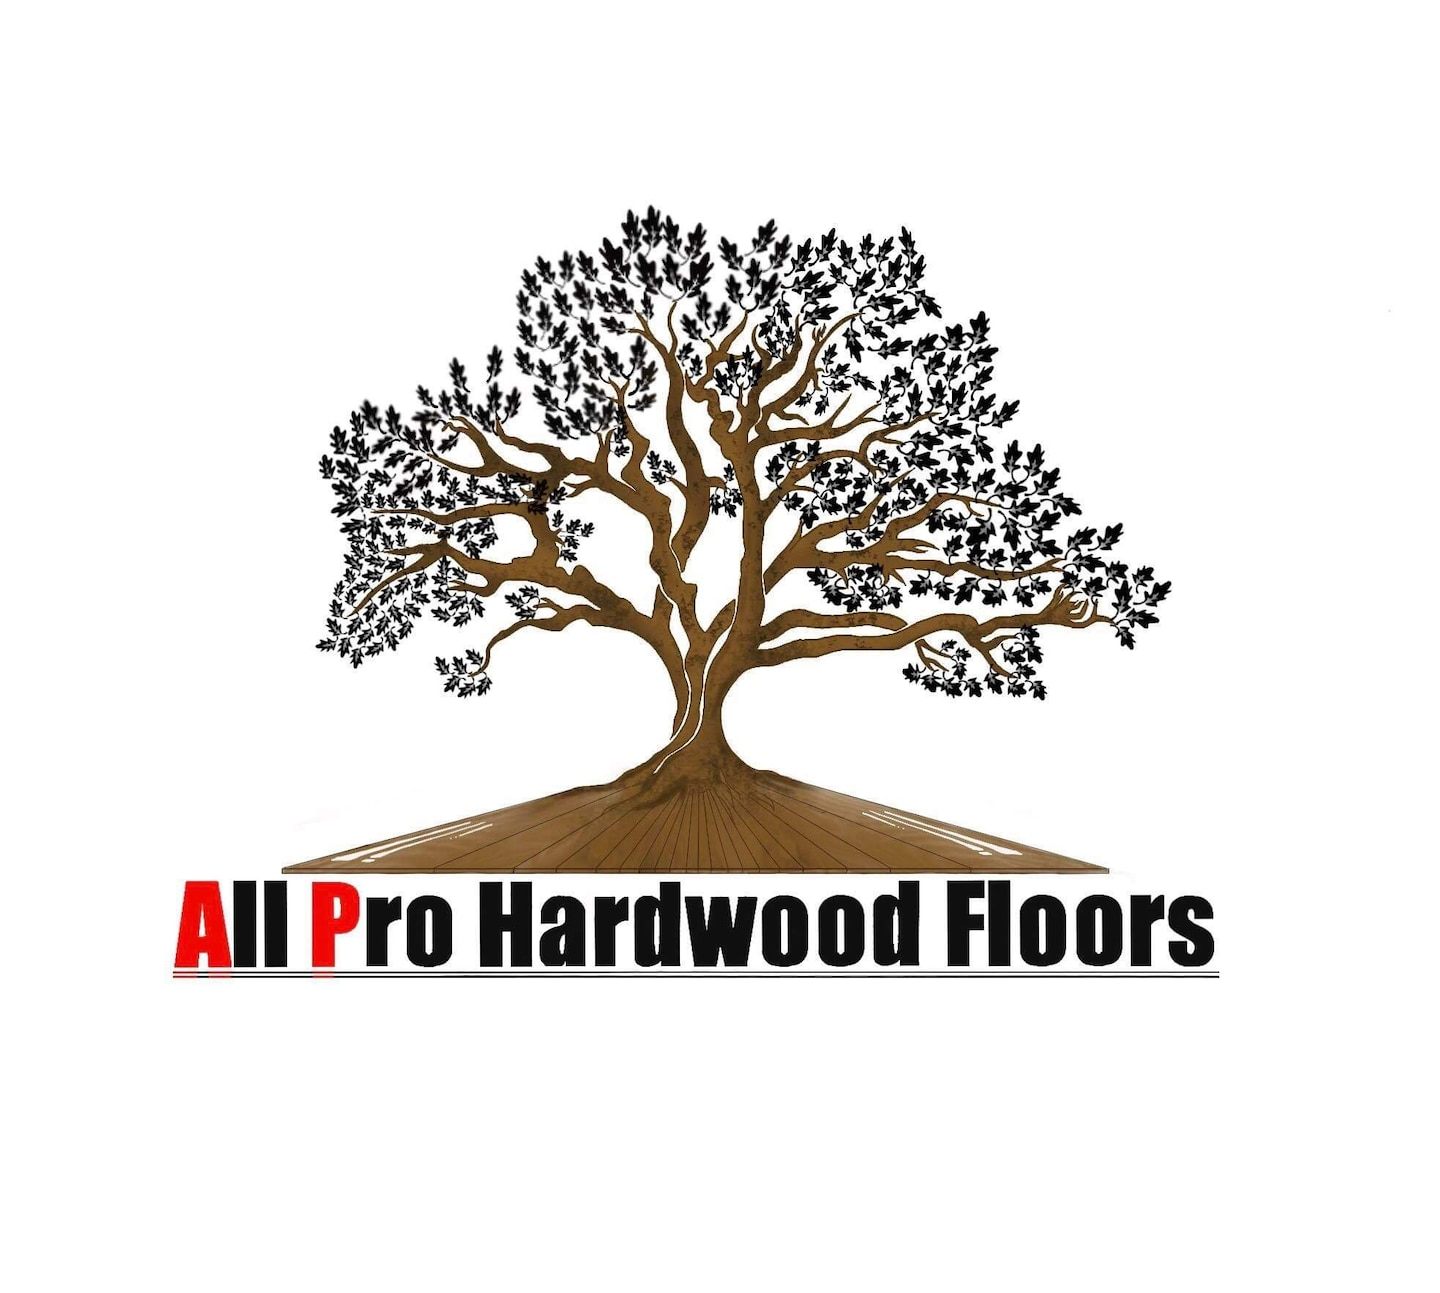 All Pro Hardwood Floors  logo